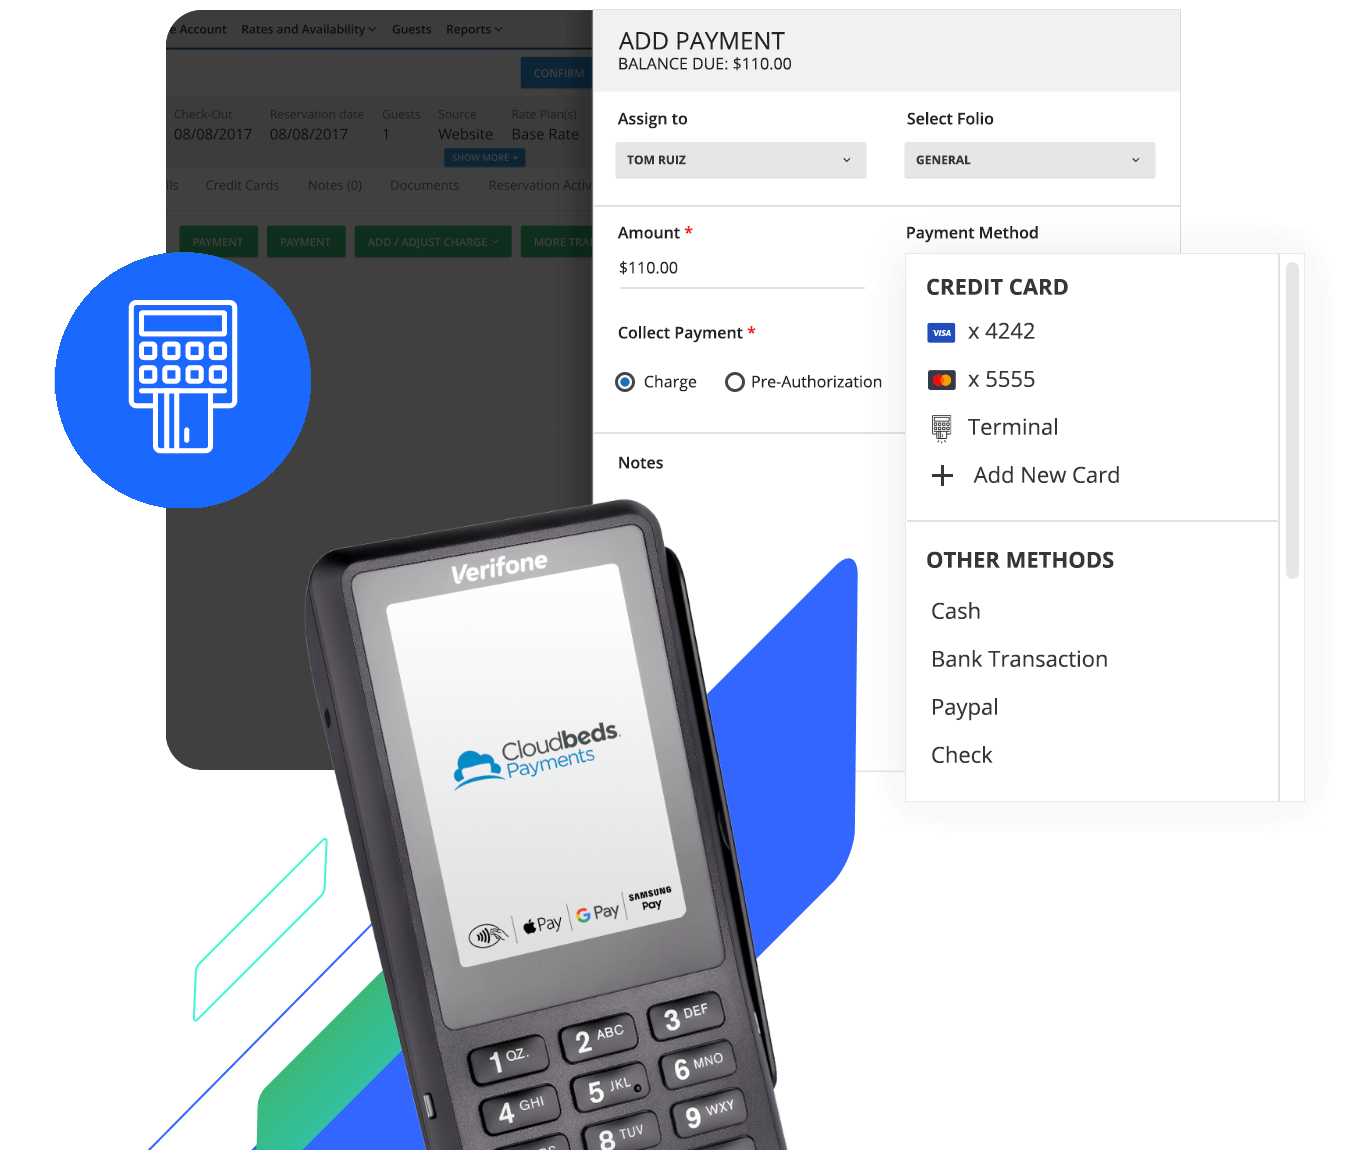 Cloudbeds payment processing